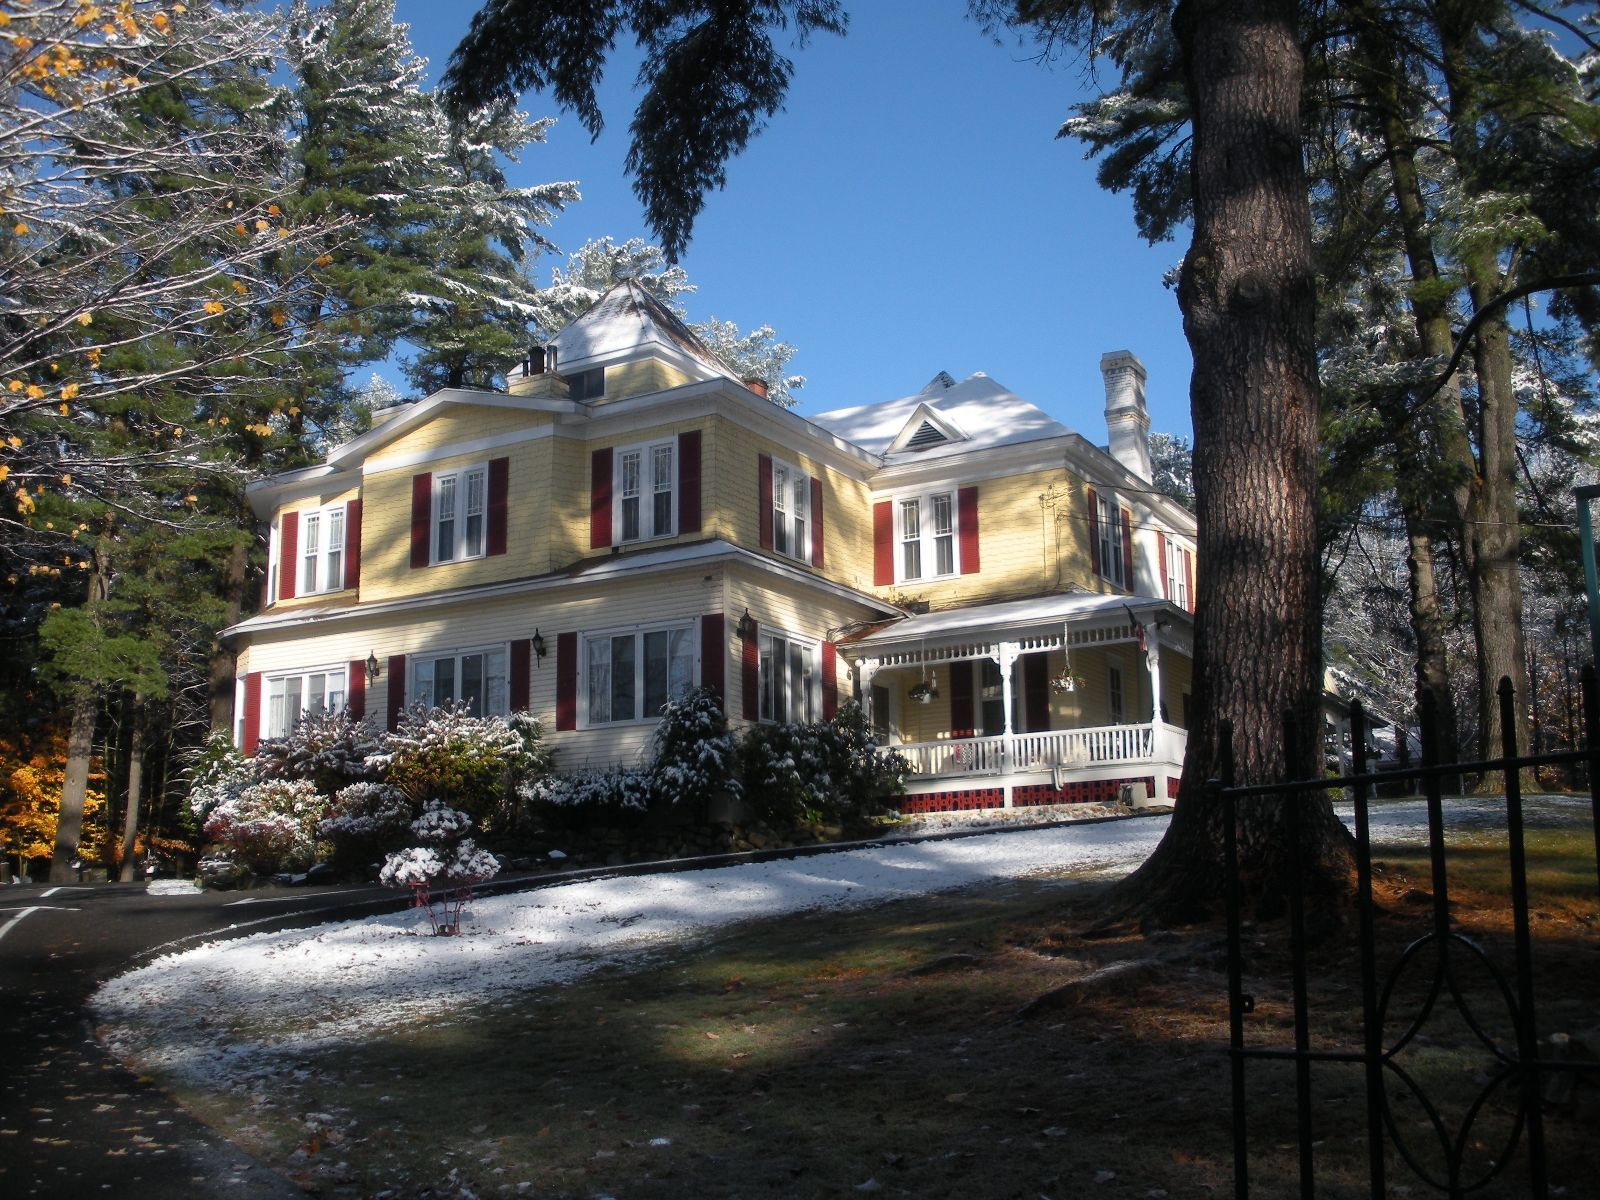 Cozy Bed And Breakfast Near Lake George Ny With Fireplace